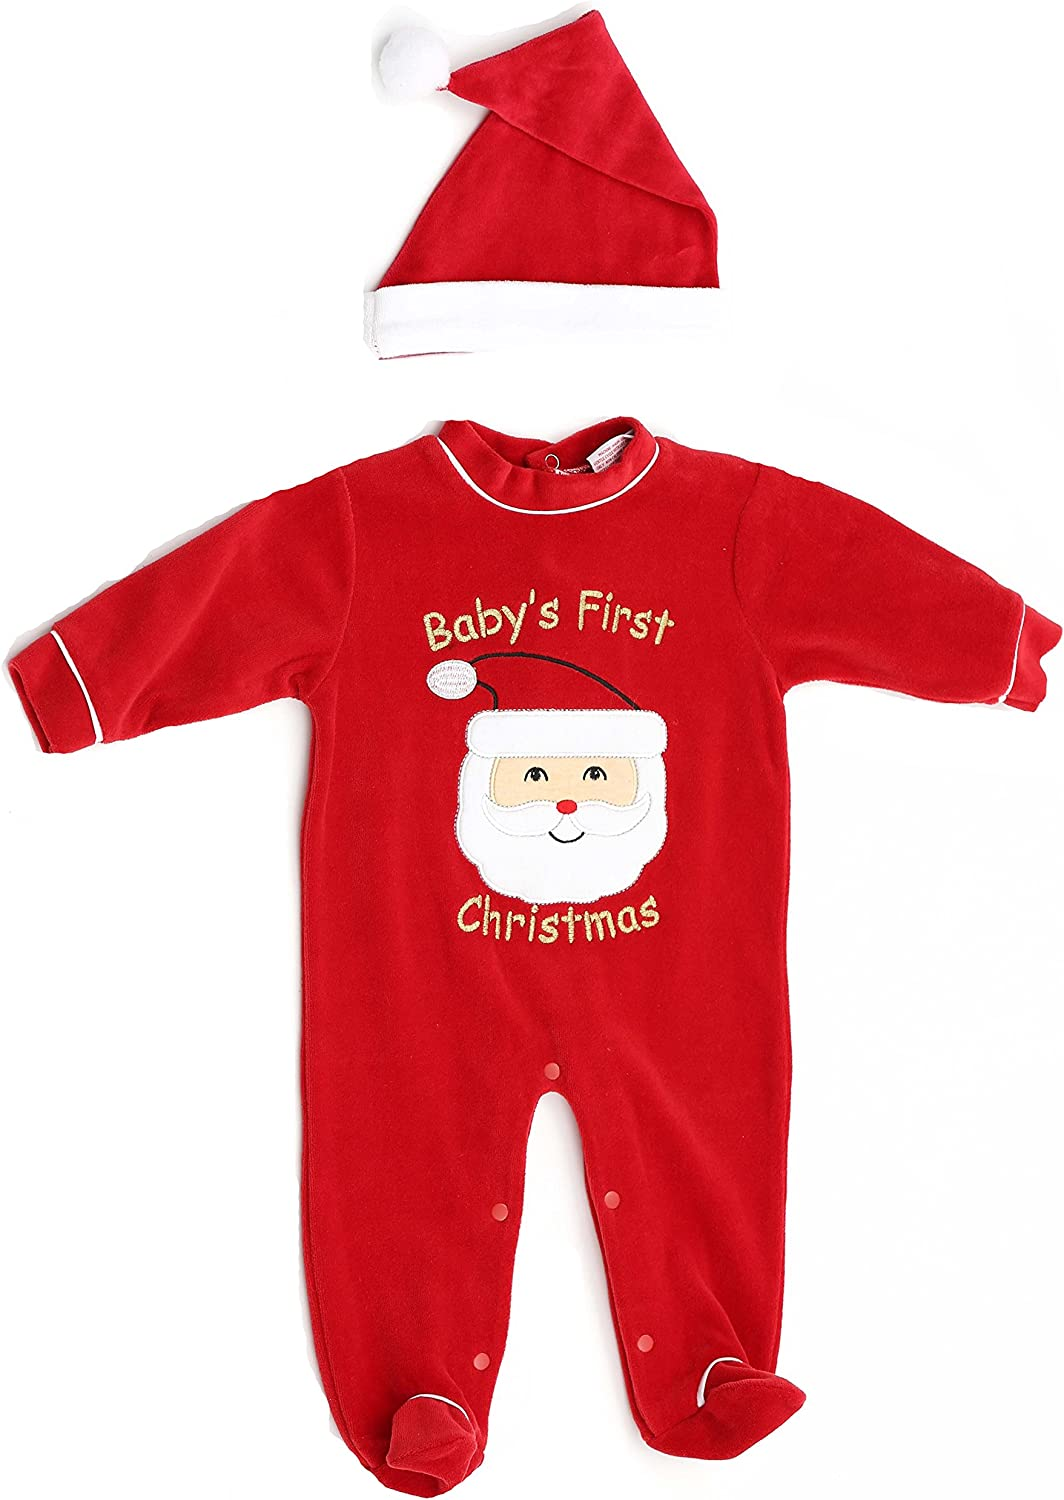 Just Love Christmas Coverall for Baby & Infant with Matching Santa Hat